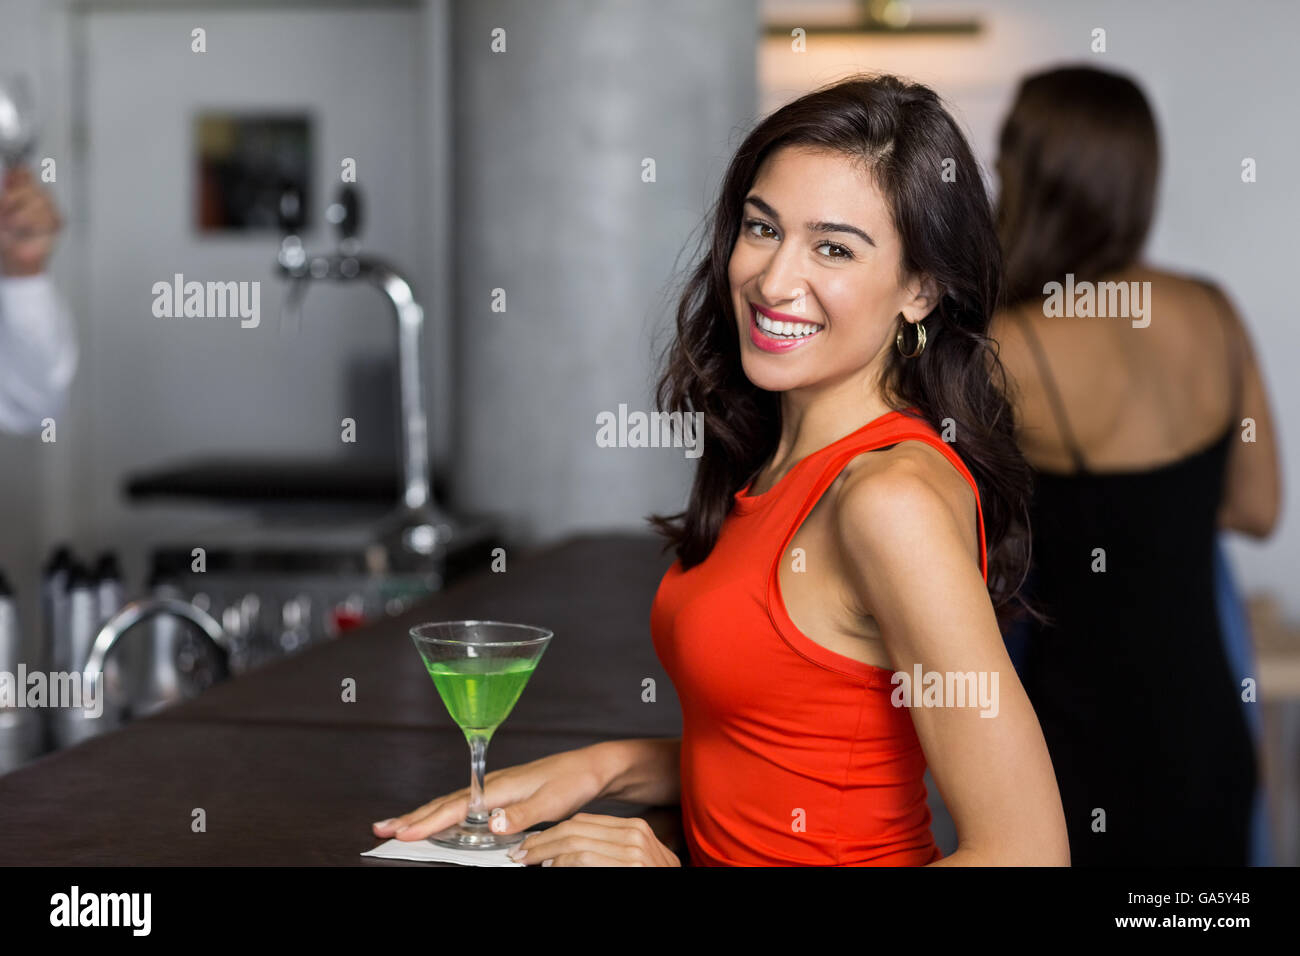 Beautiful woman standing with cocktail glass - Stock Image